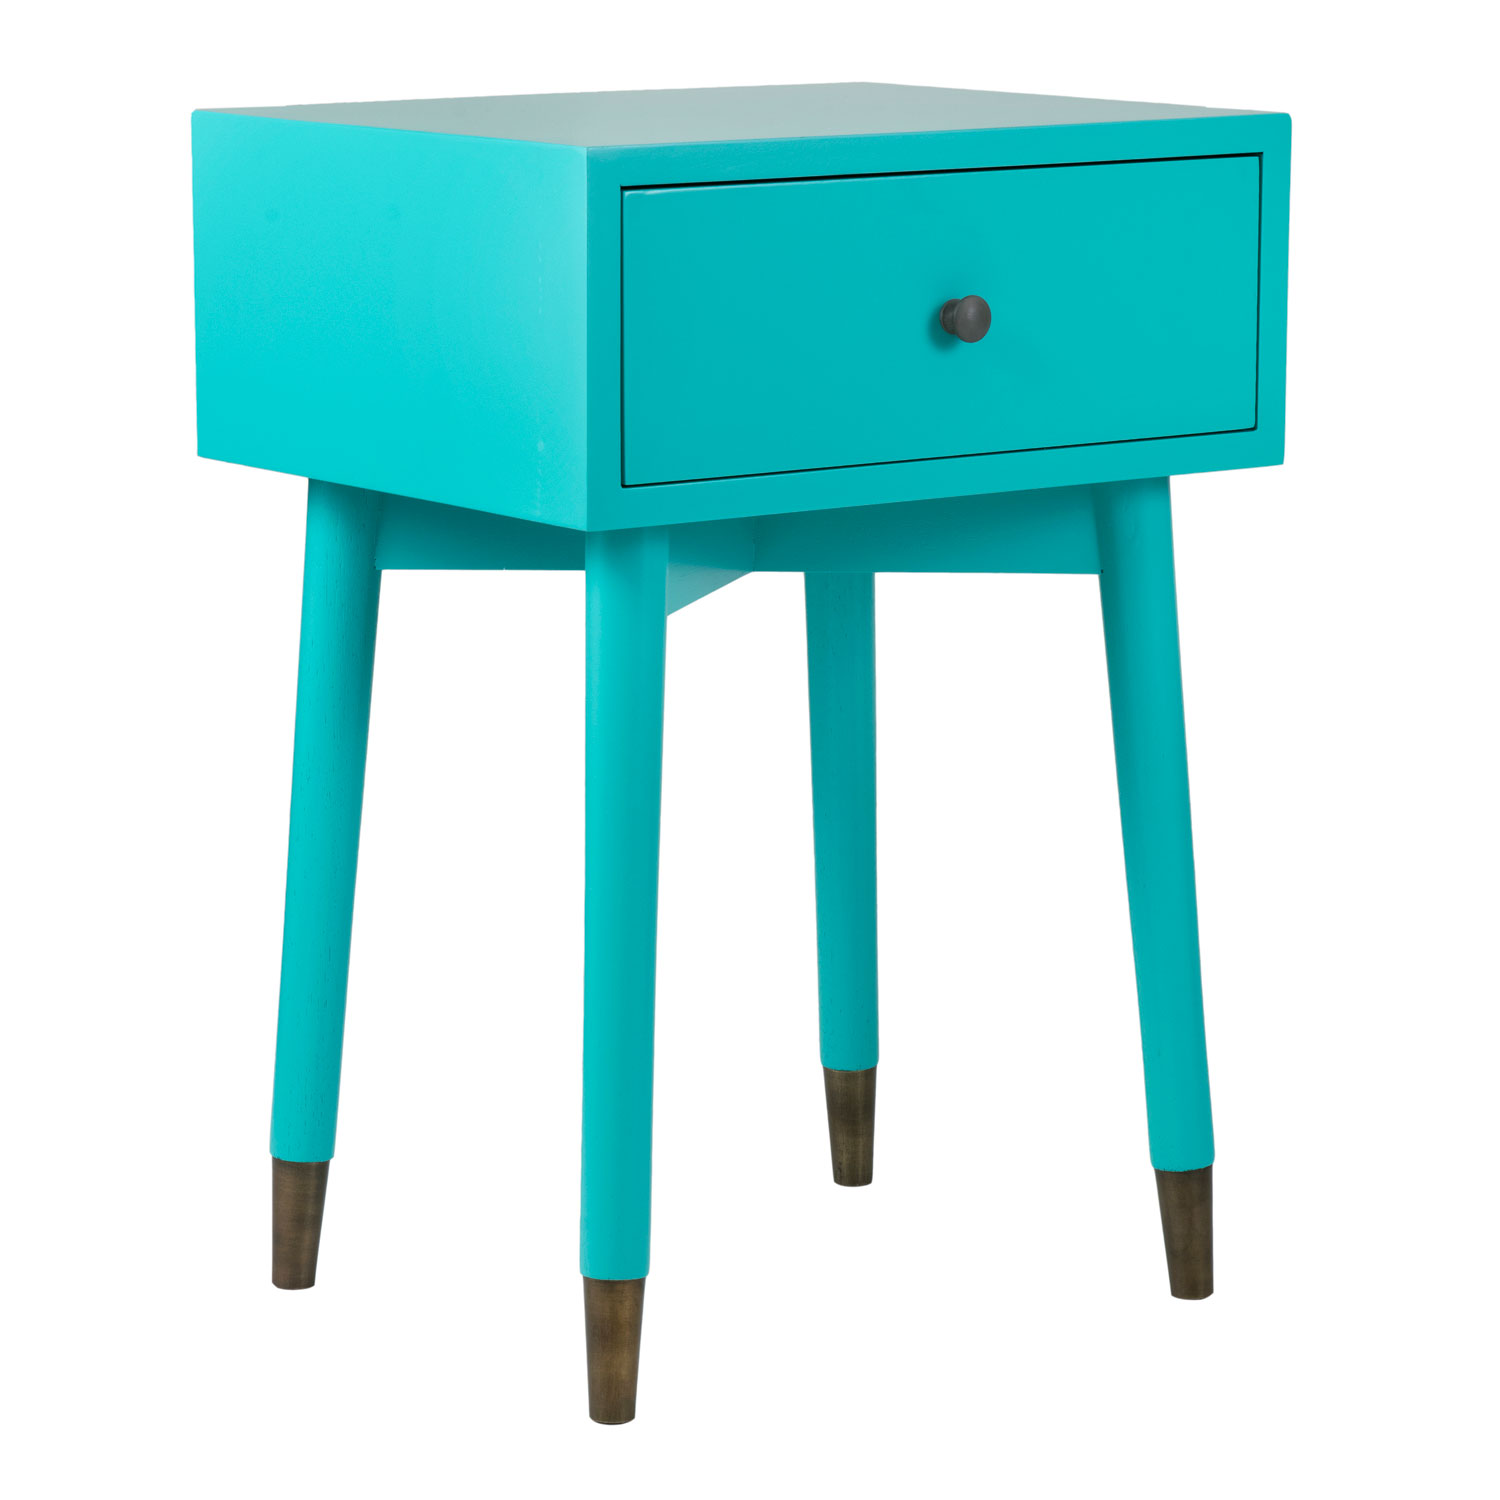 east main weeks turquoise acacia wood square accent table teal hover zoom catnapper rocker recliner glass top end tables rustic gray ceiling chandelier target makeup vanity dining